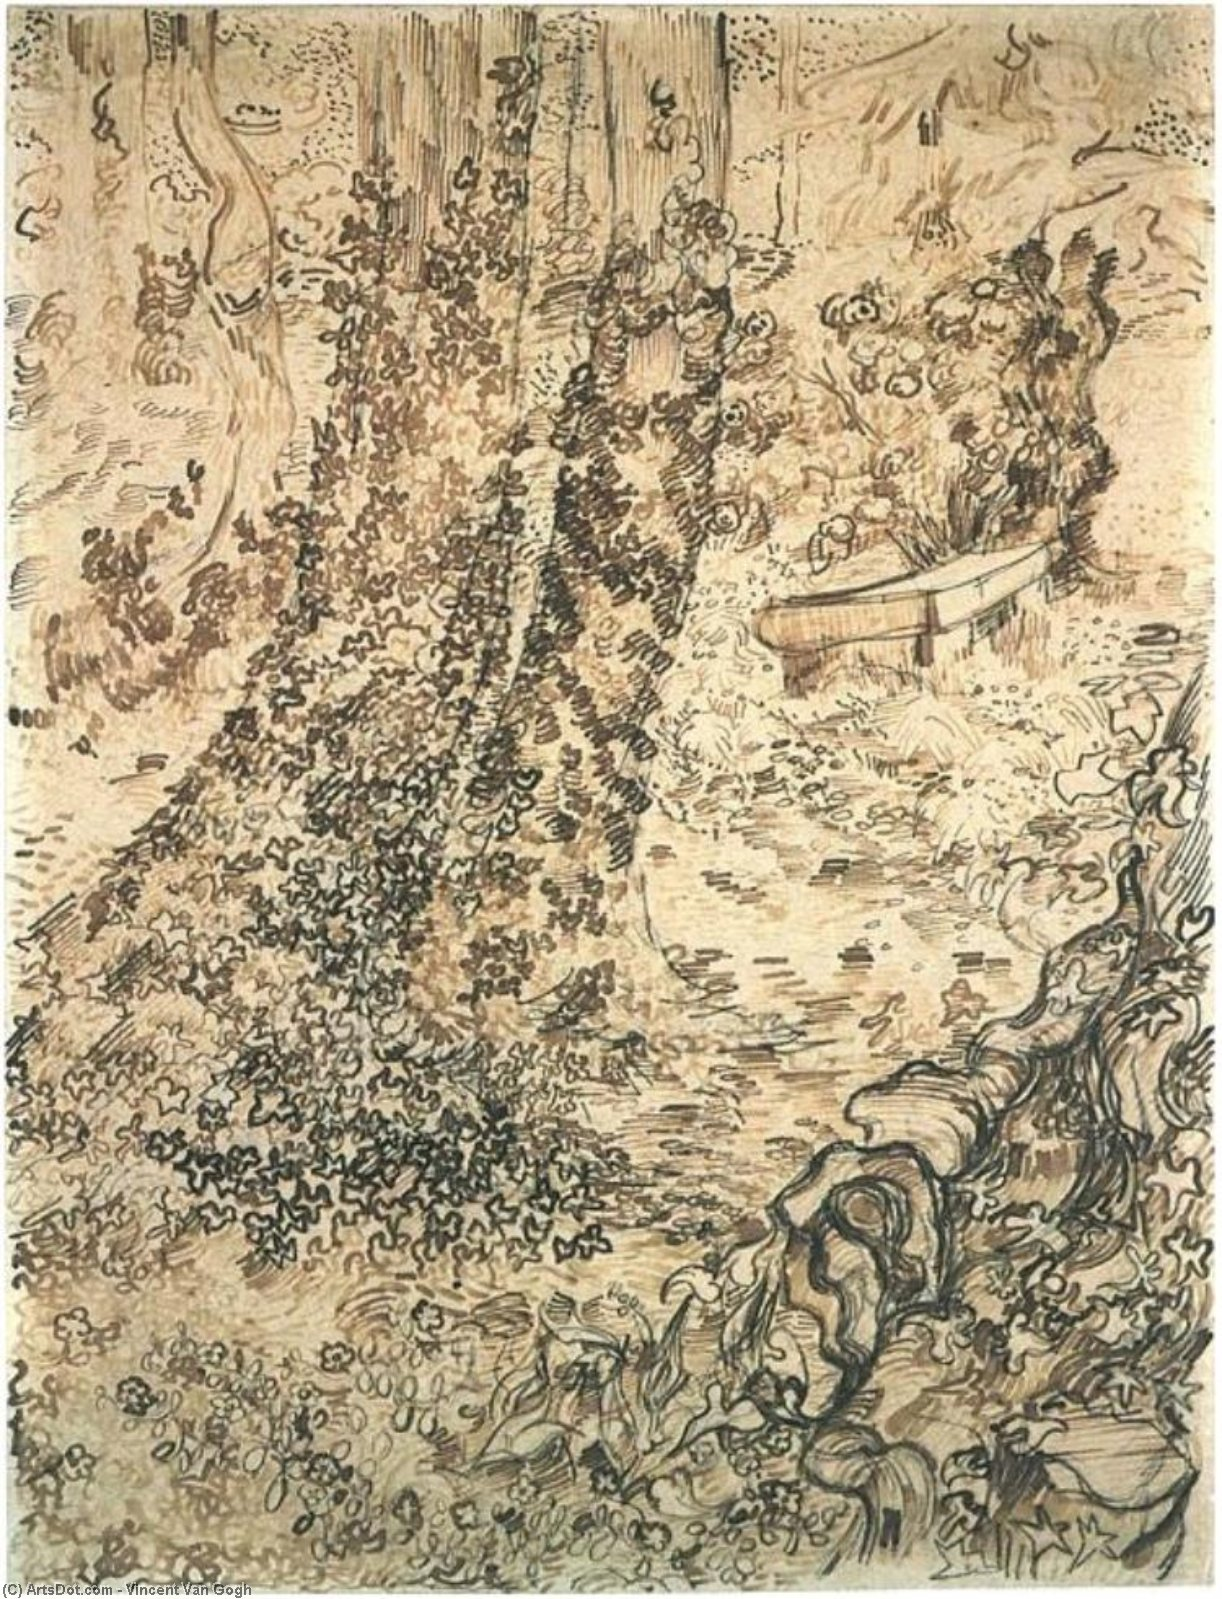 Wikioo.org - The Encyclopedia of Fine Arts - Painting, Artwork by Vincent Van Gogh - Trees with Ivy